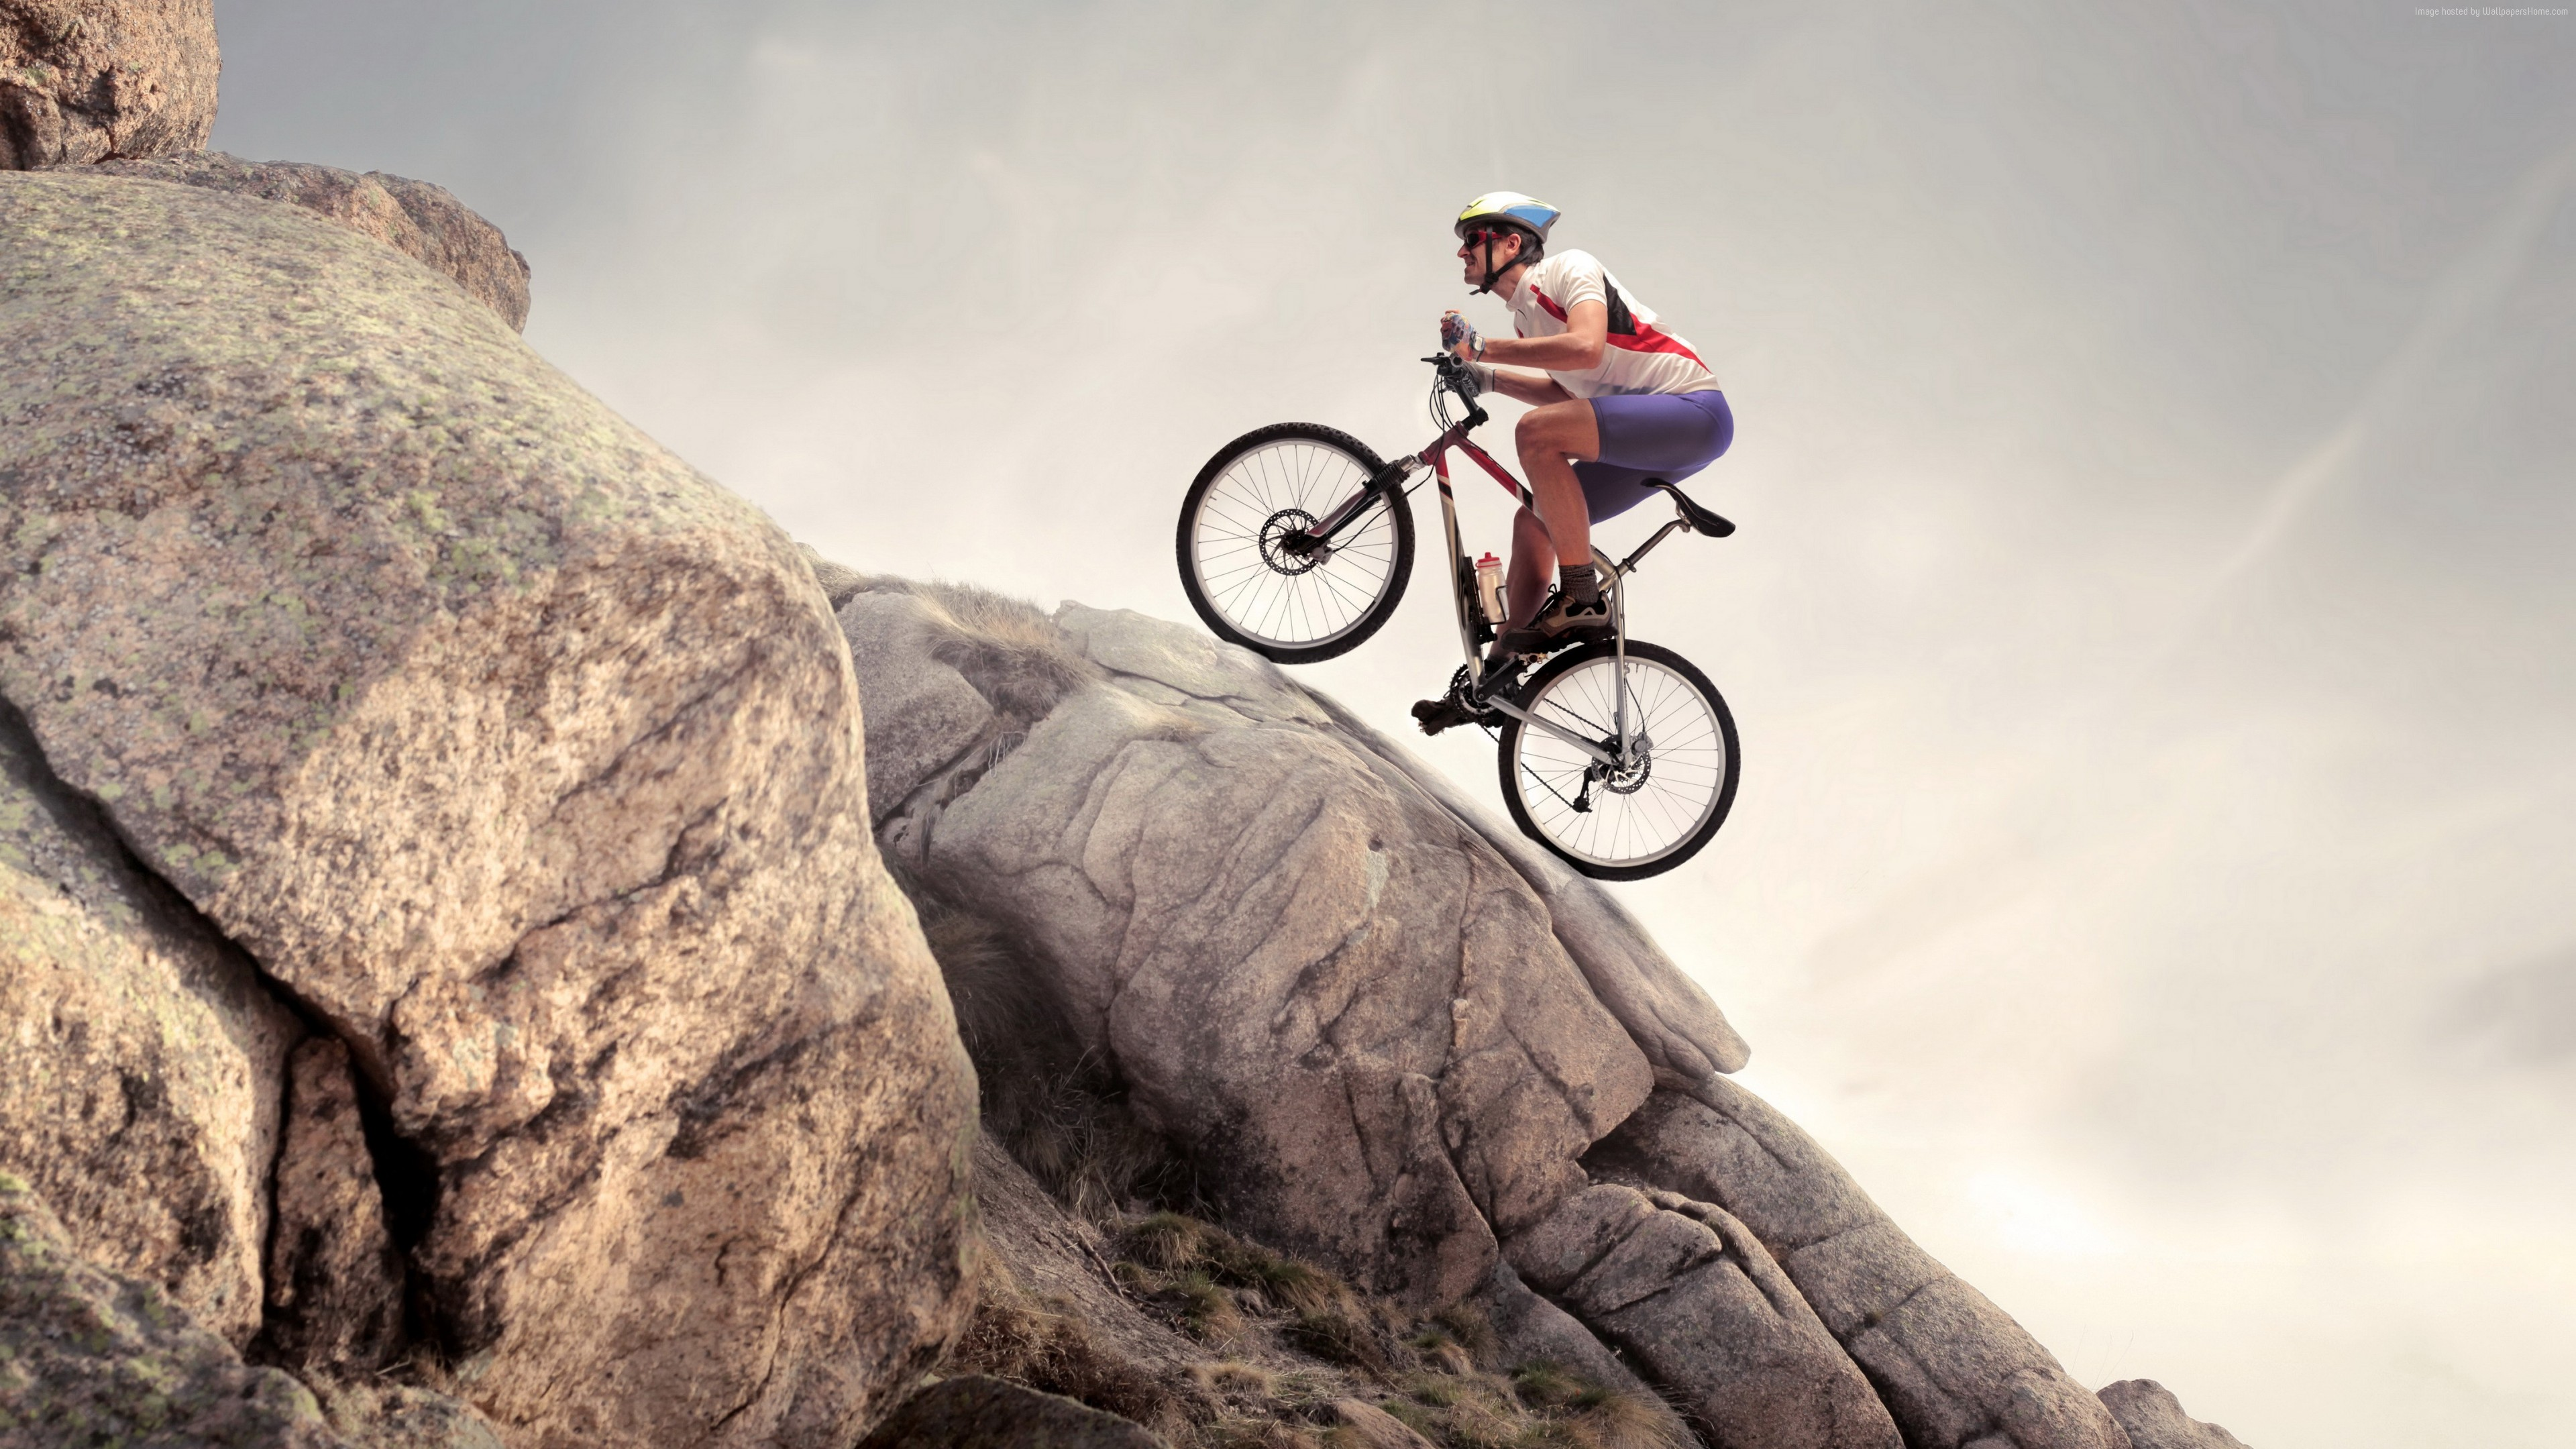 Wallpaper rock, climbing, cycle, extreme, Sport